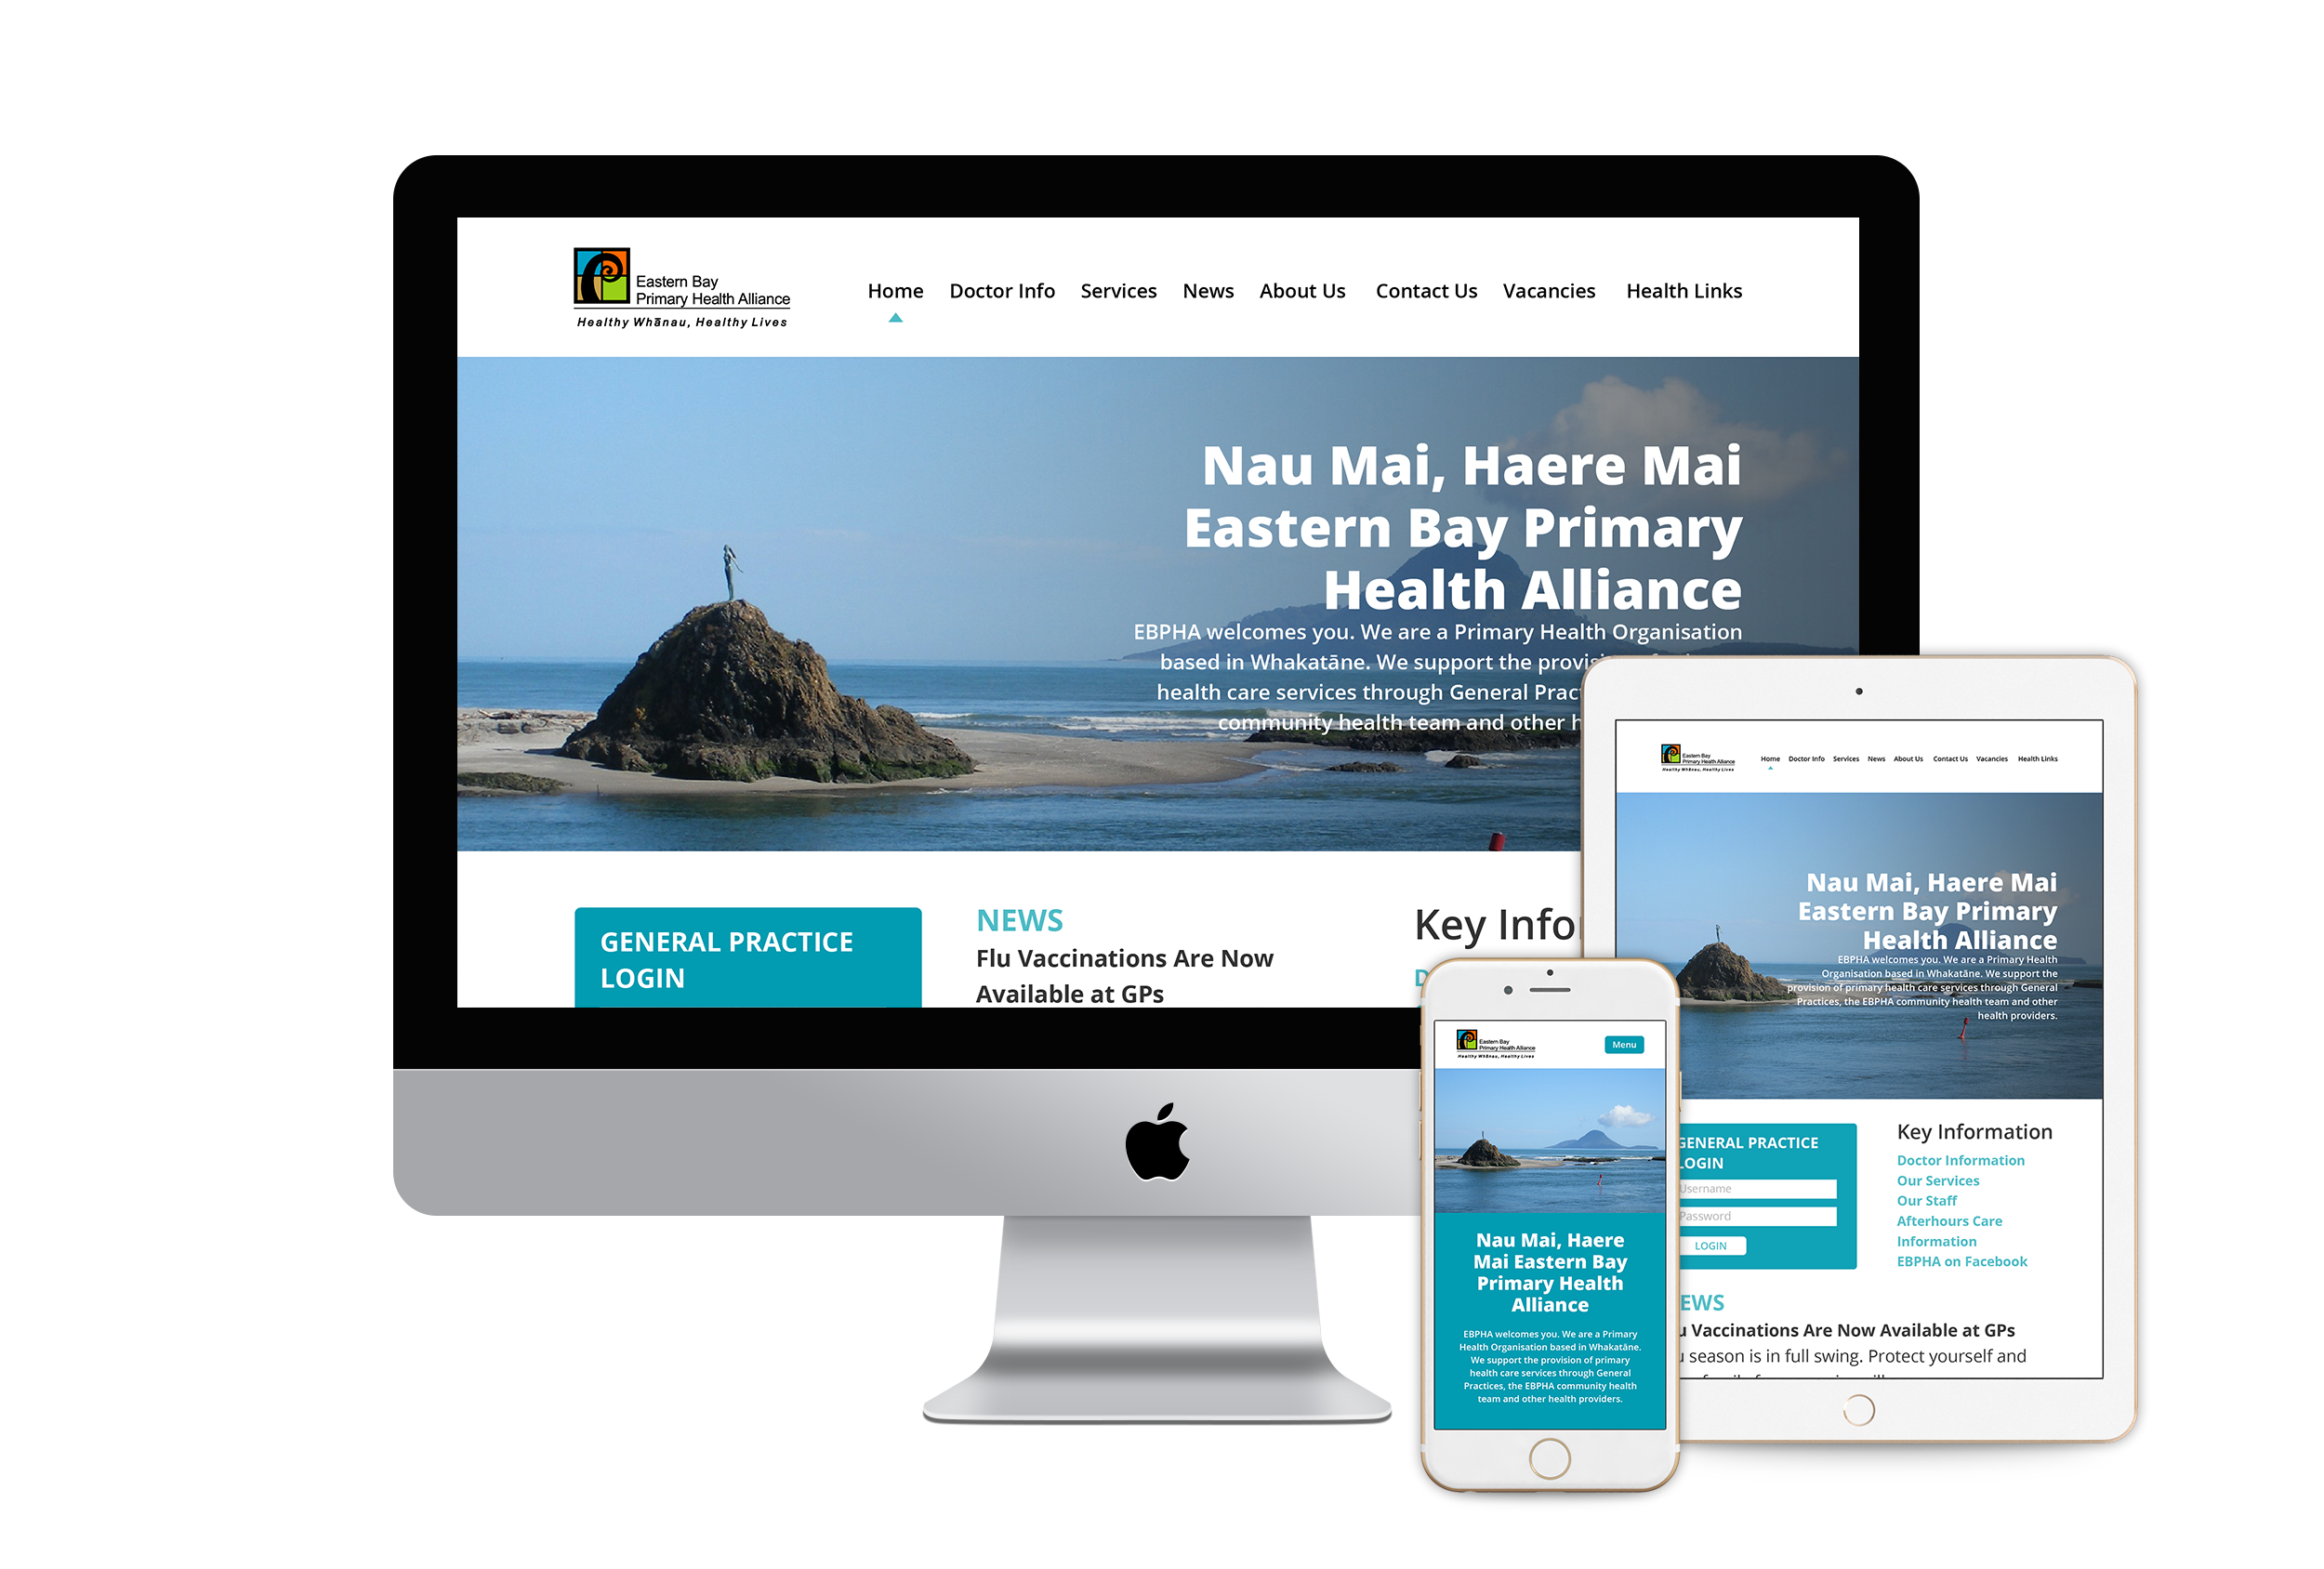 Eastern Bay PHA - Project Manager Eleanore McDonald needed a new website for the Eastern Bay Primary Health Alliance that was the trusted source for up-to-date healthcare information in the region, easy for users to navigate and a design upgrade.